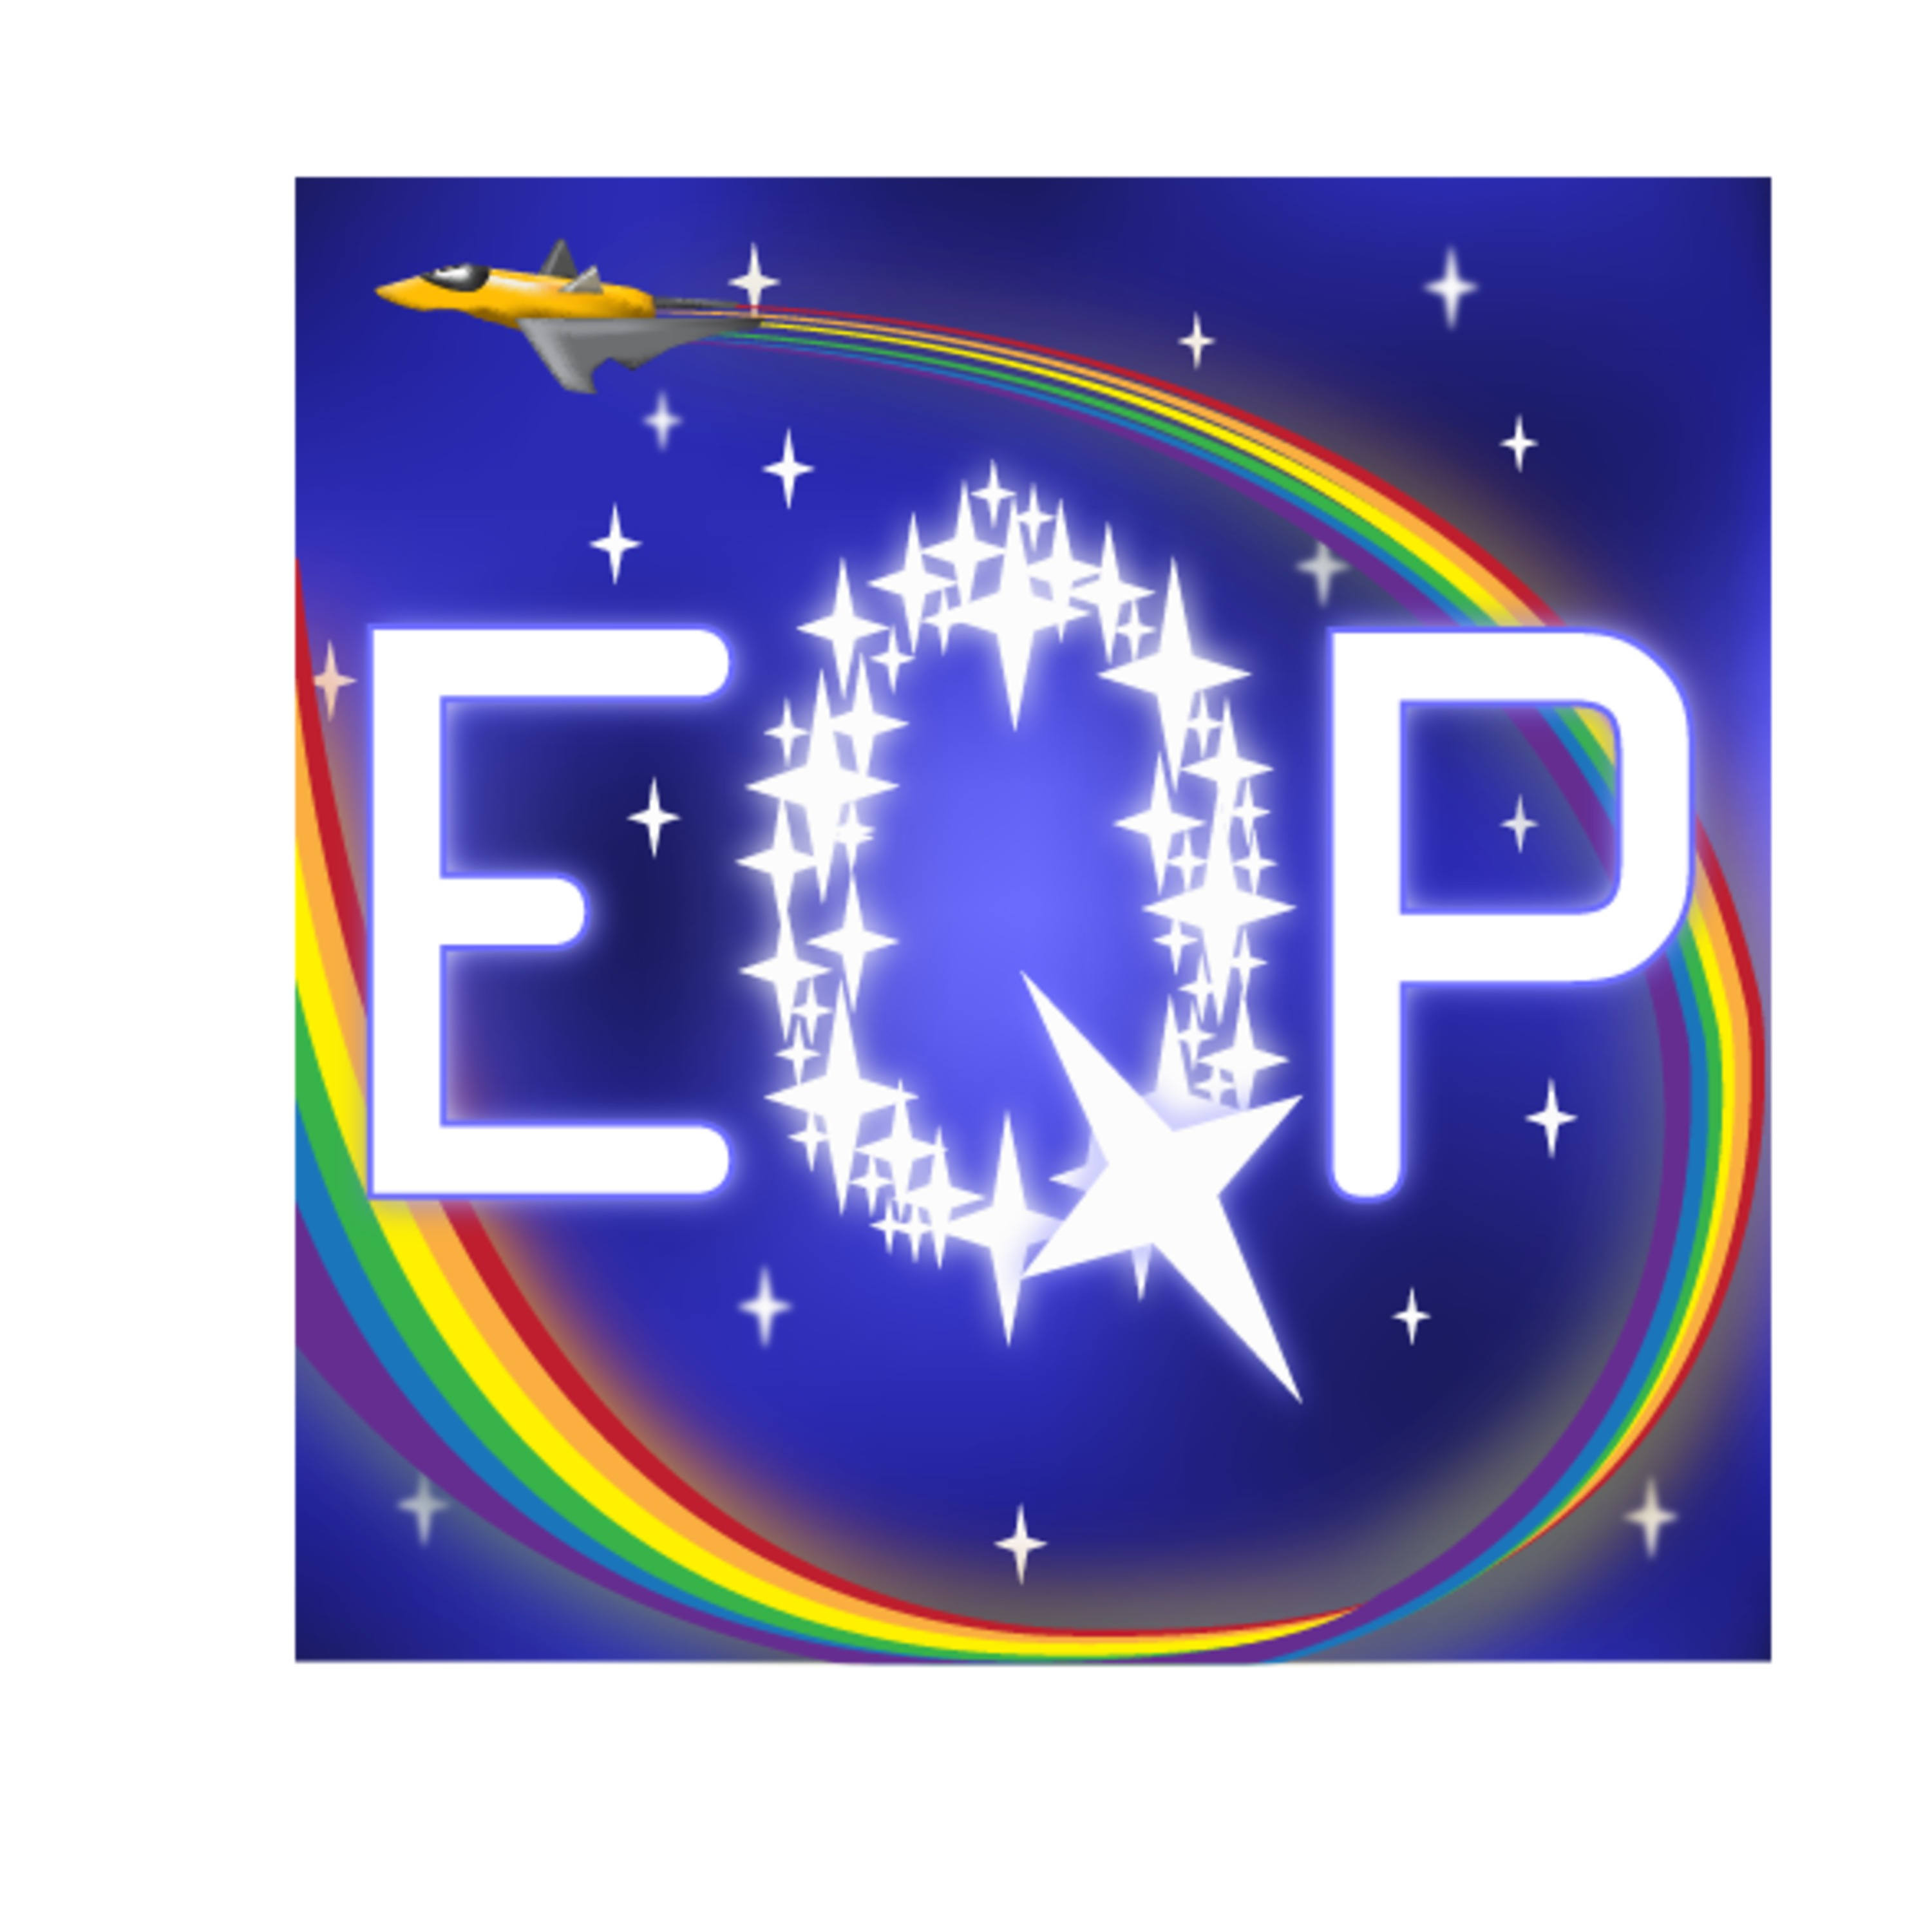 EQP SF Season 2 Announcement